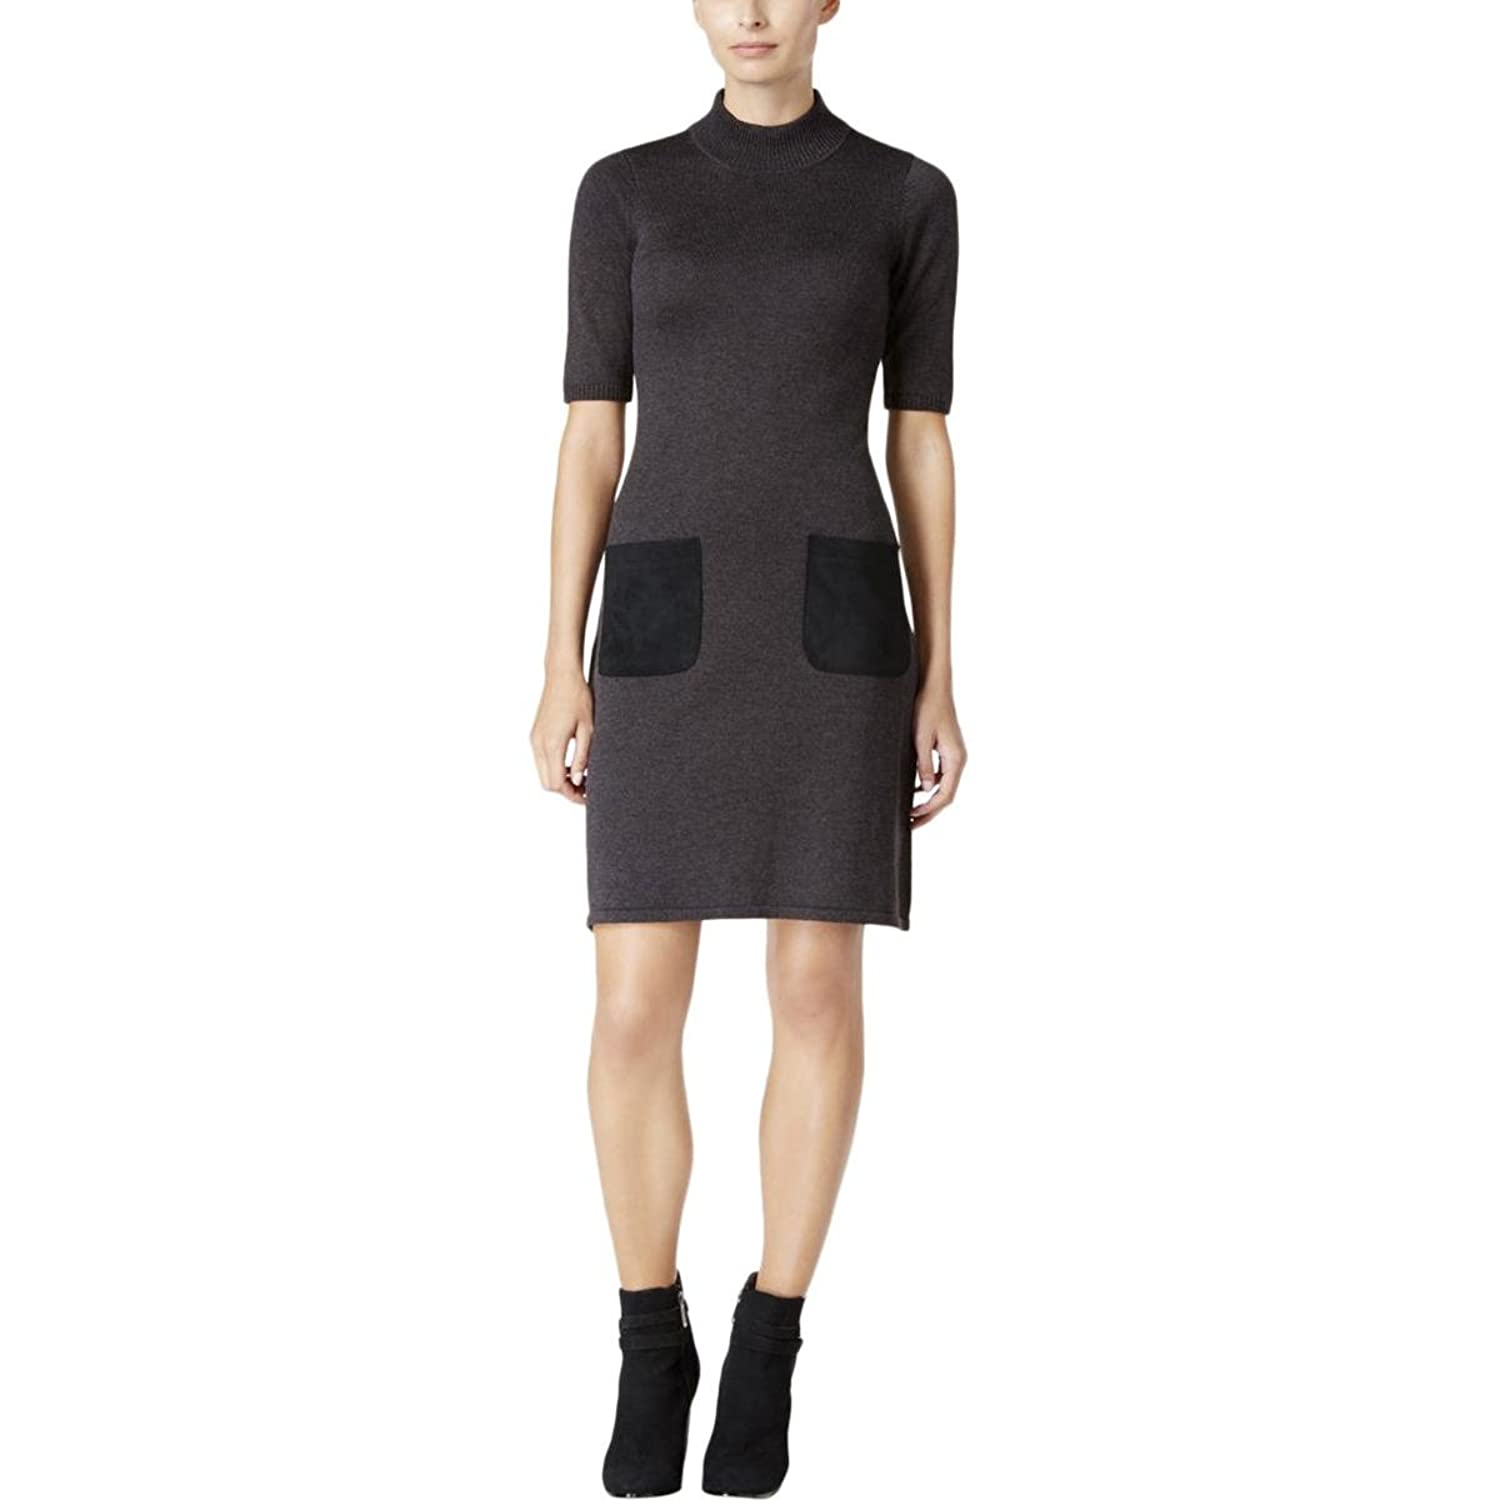 Calvin Klein Women's Short Sleeve Crew Neck Sweater Dress With Suede Parch Pockets for sale